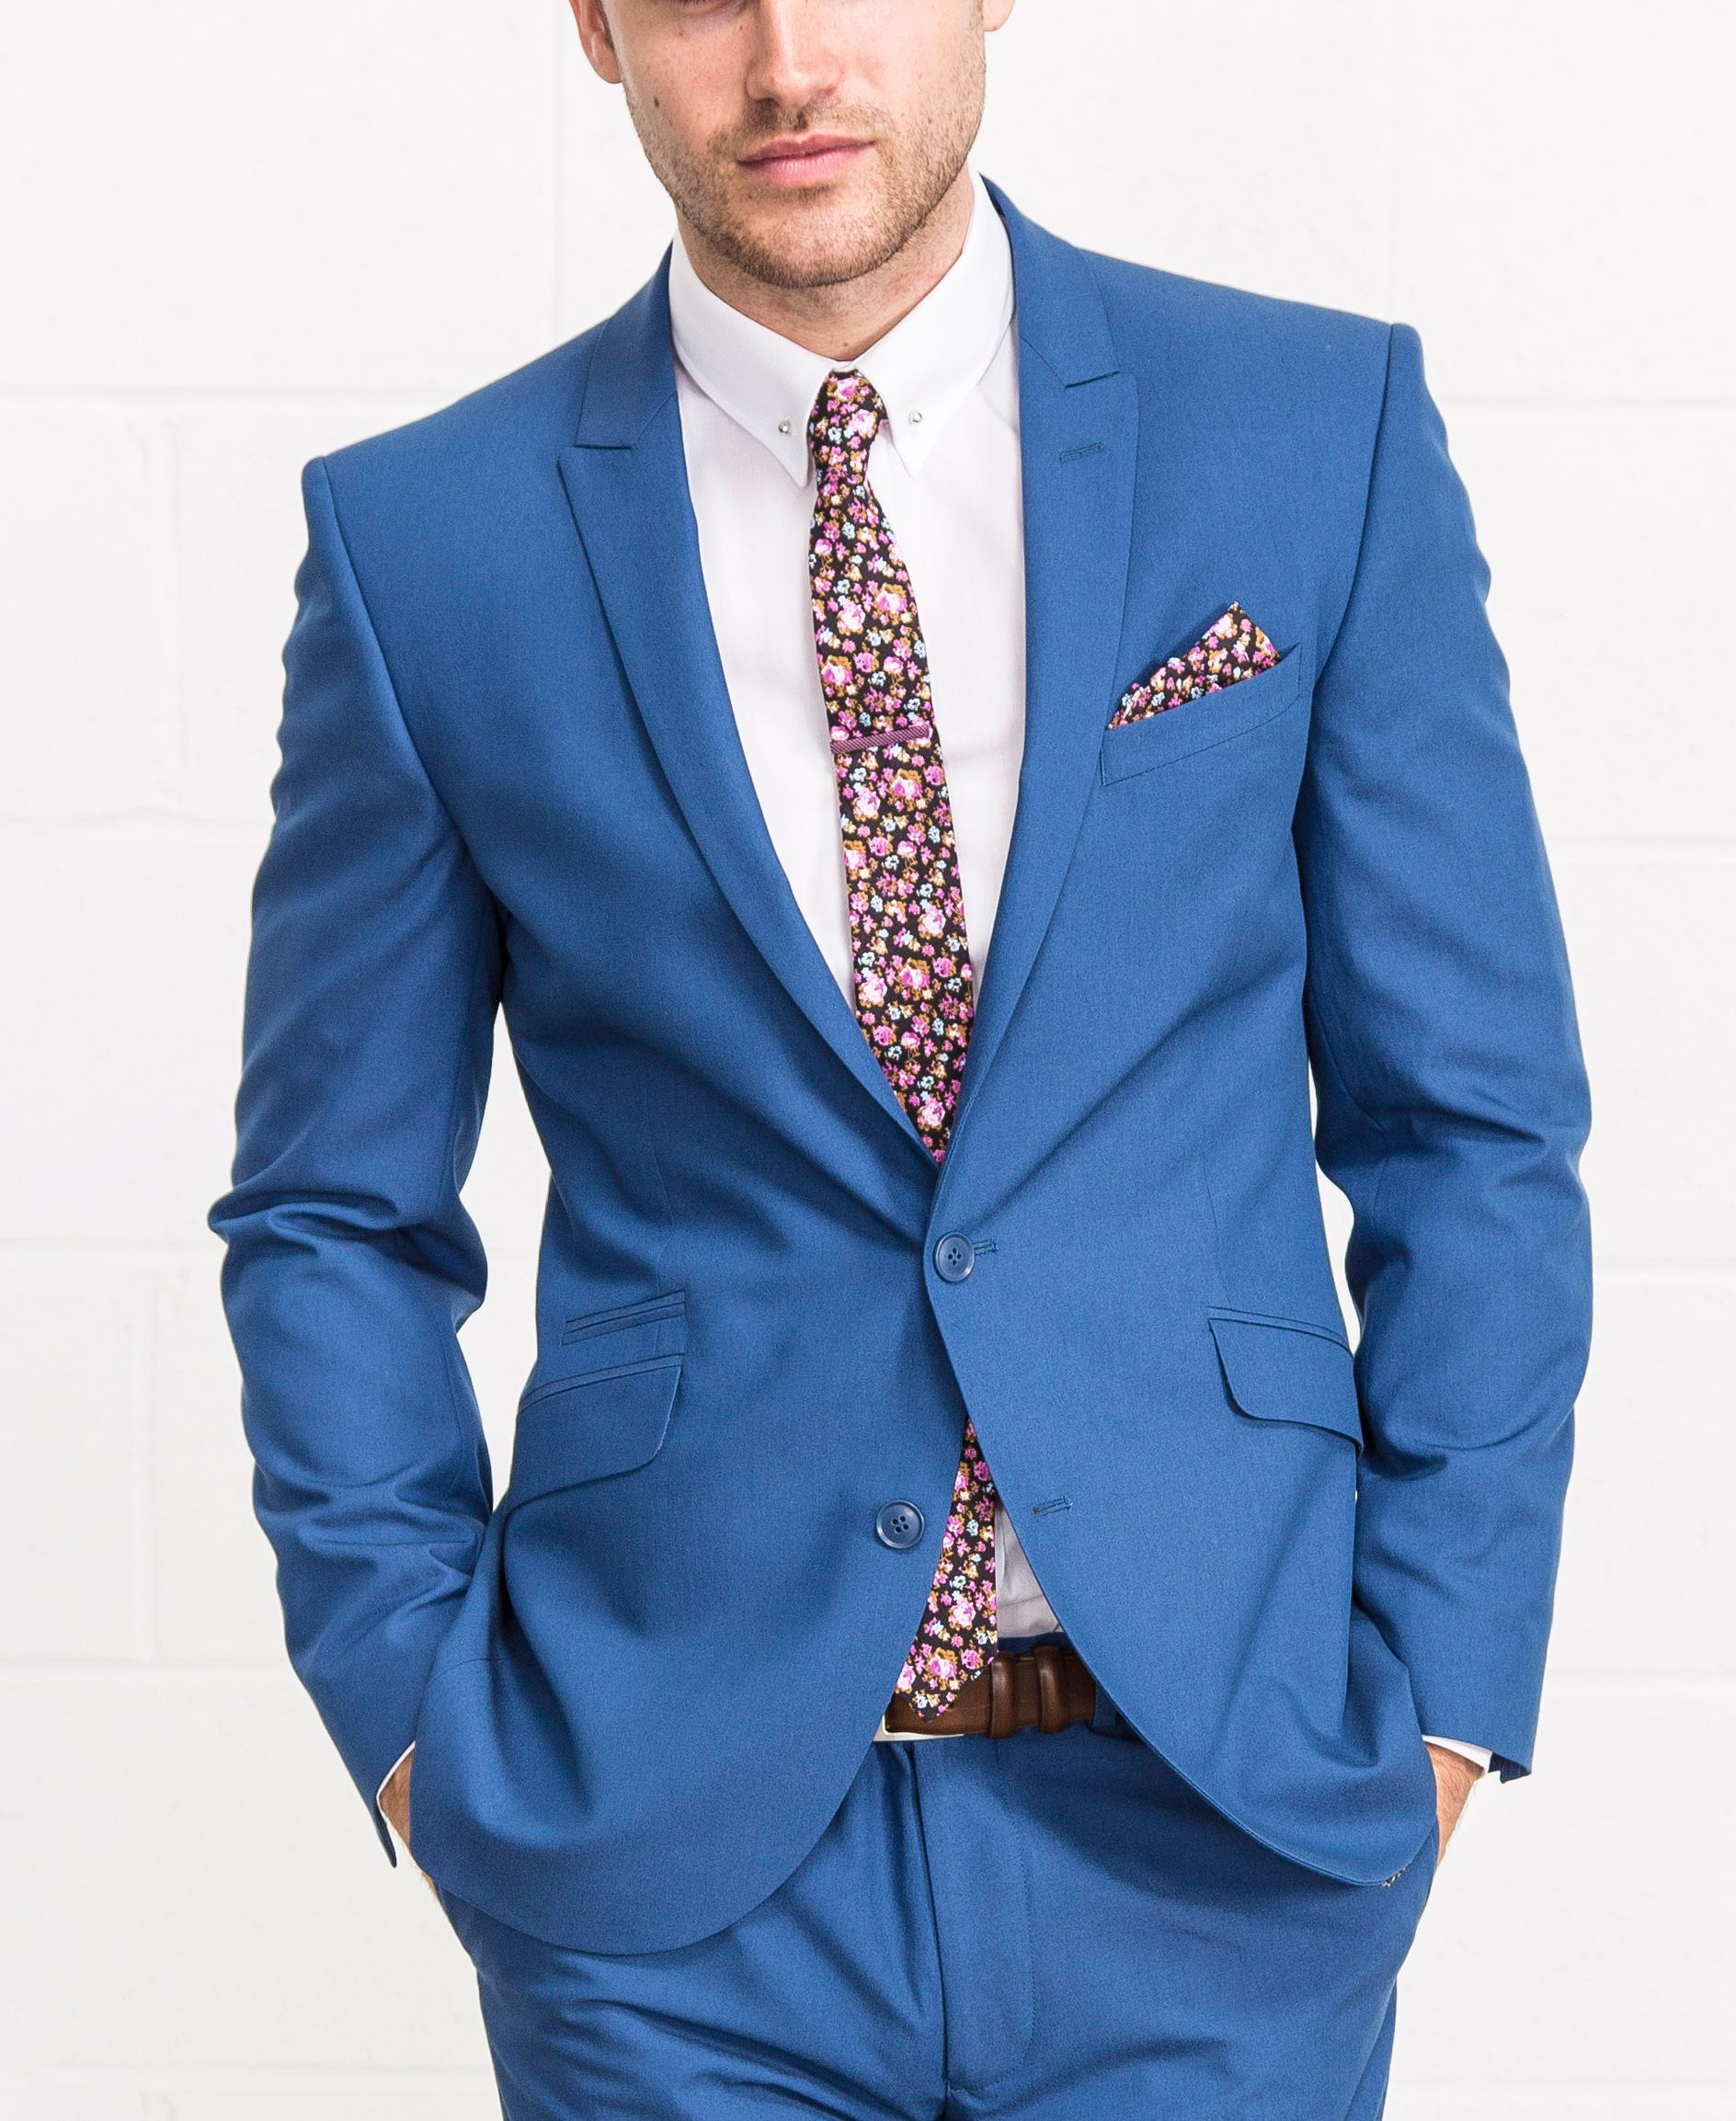 Blue suit with a floral touch in the tie and pocket square // ideal ...